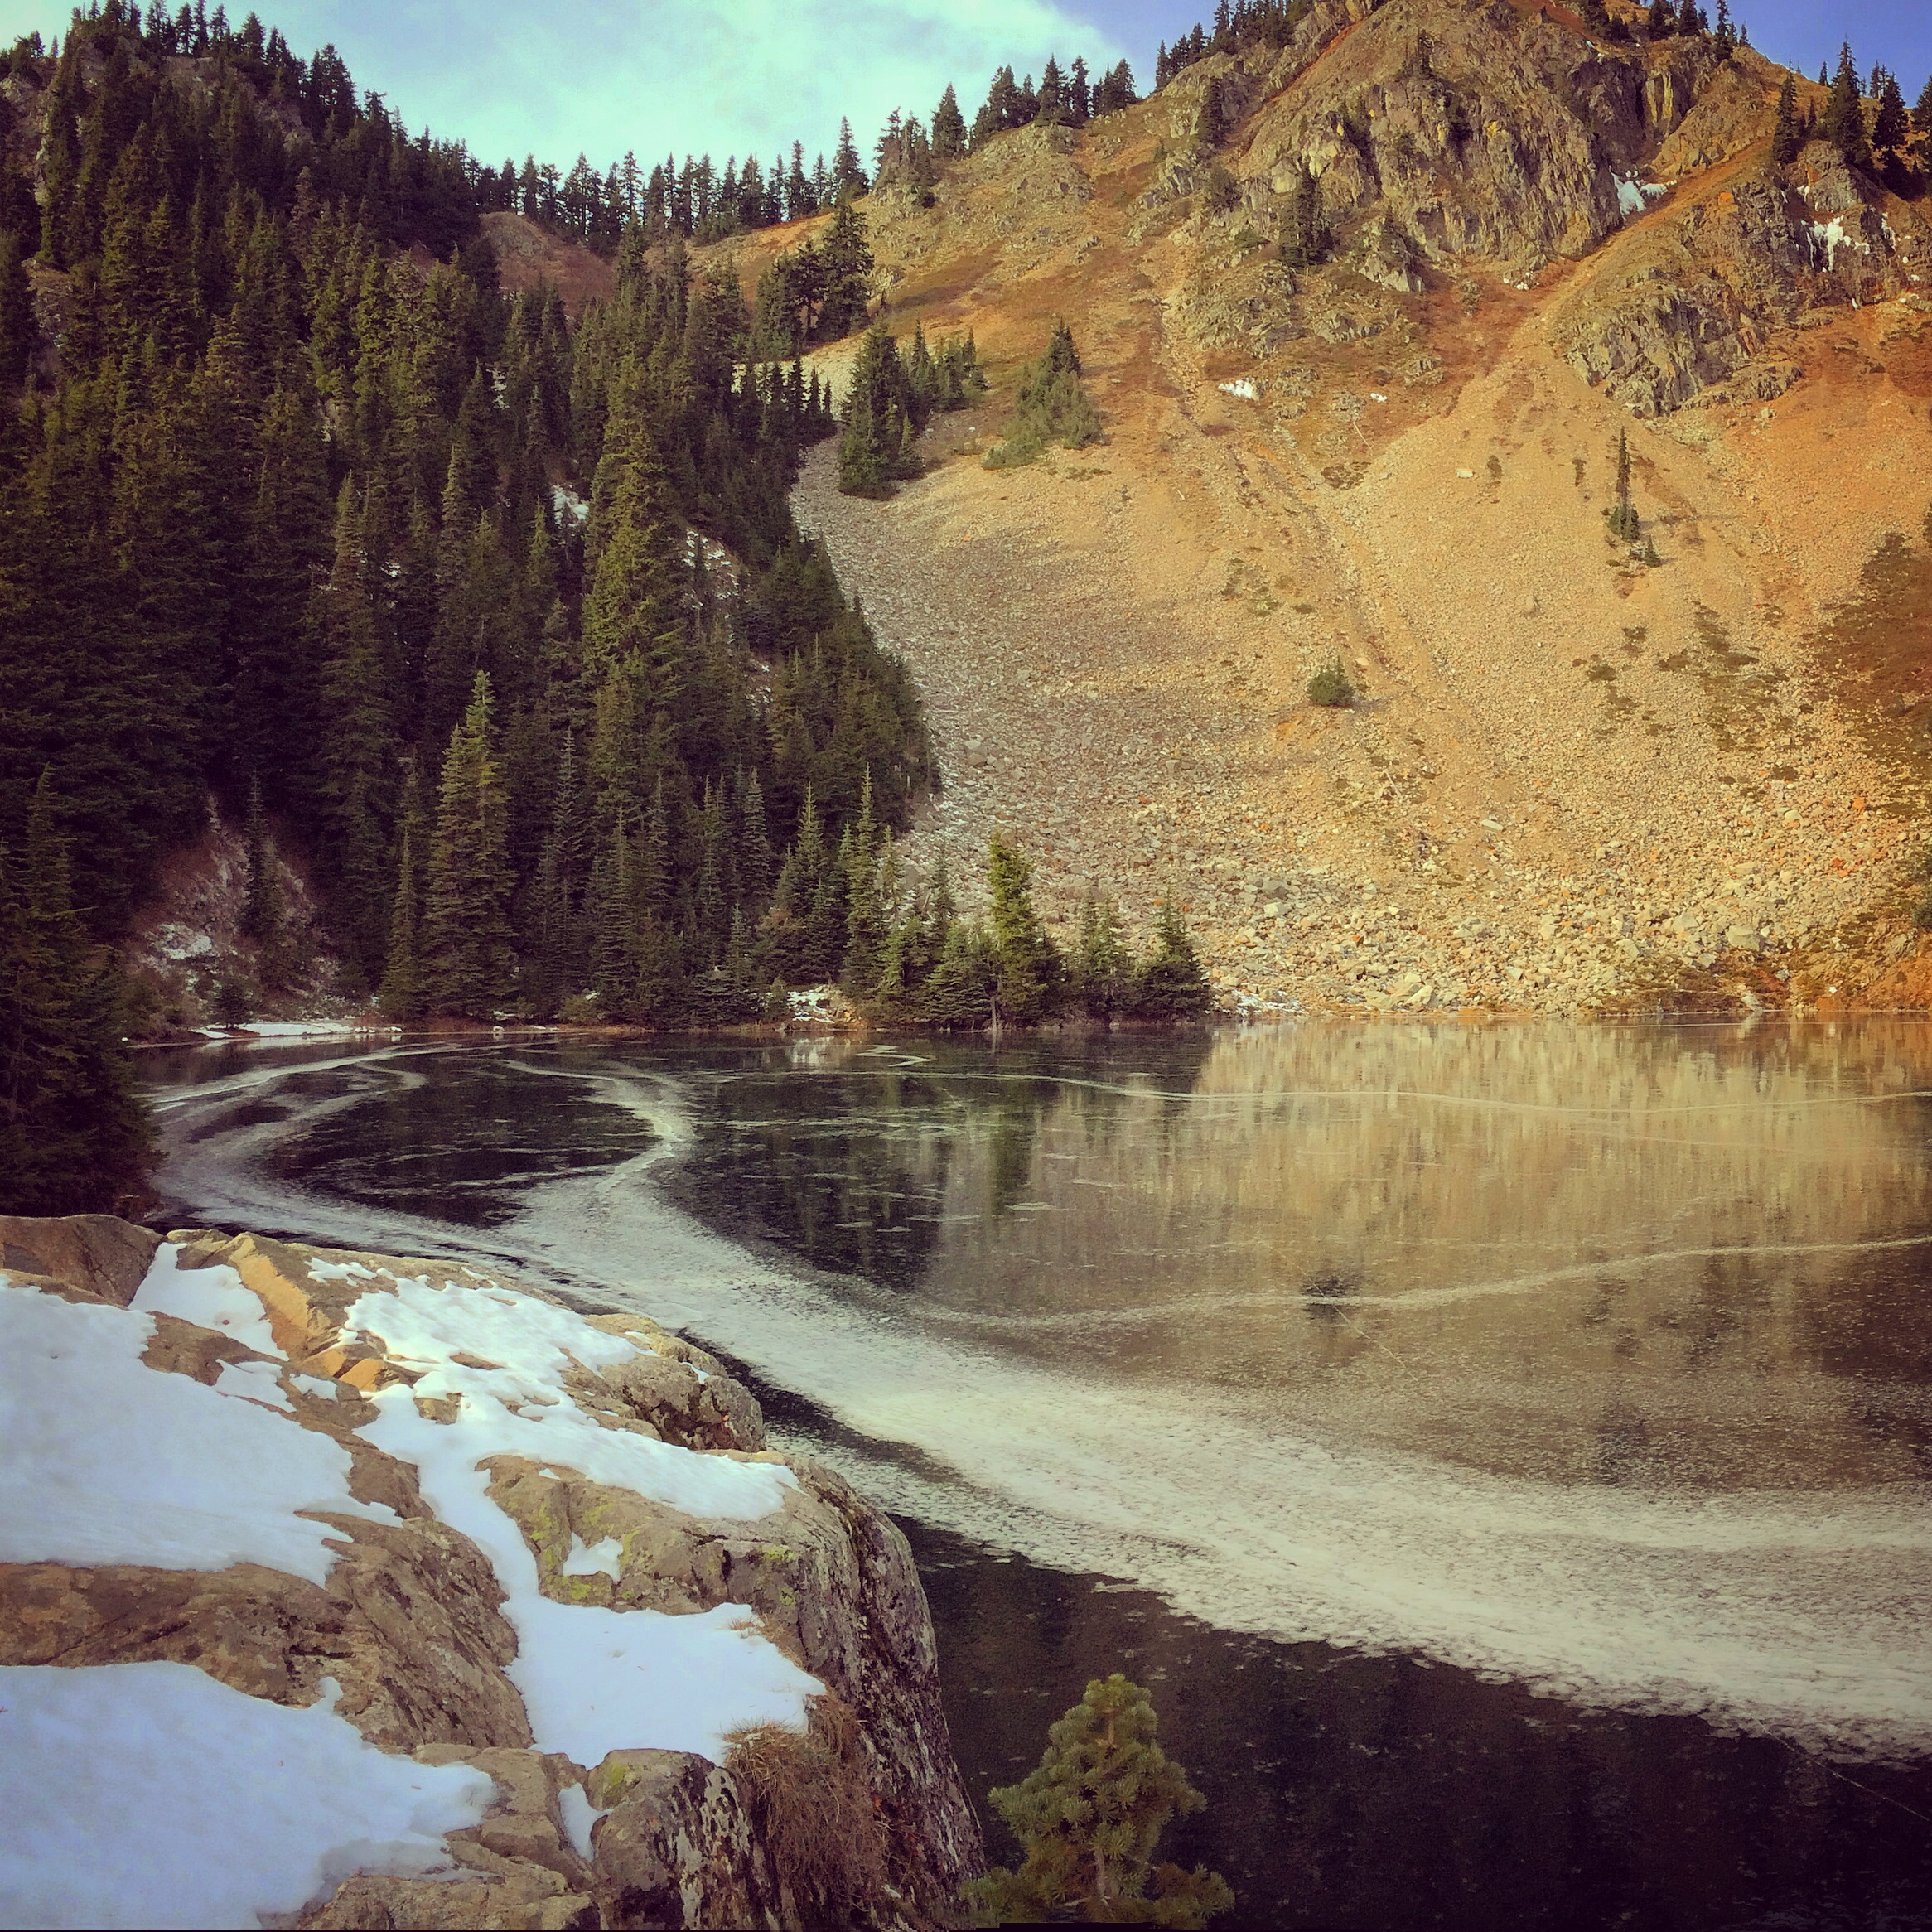 We made it! Margaret Lake was frozen solid... and when the rocks rolled down the hill, the lake made an awesomely alien sound. So cool!